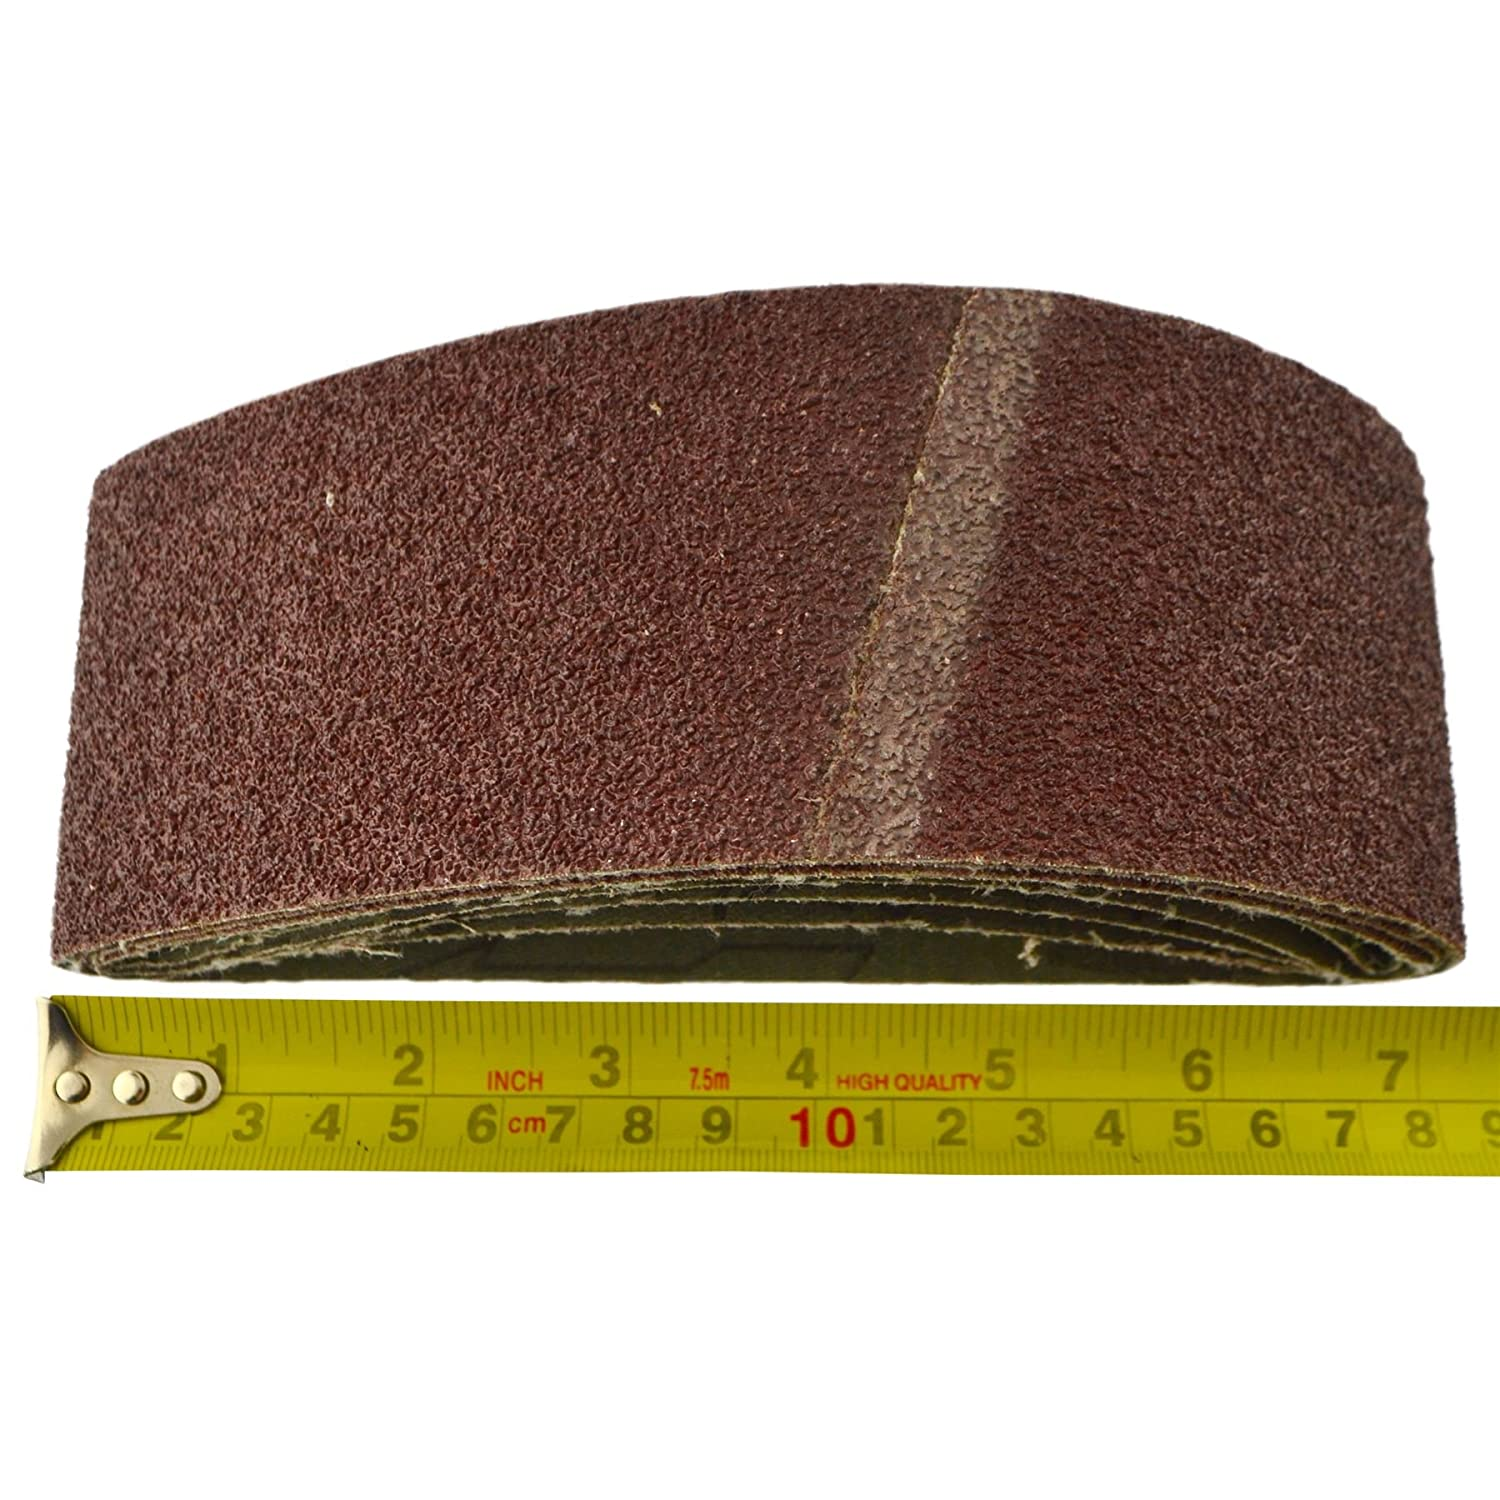 lot 20 Grain Fichier dalimentation Ponceuse Bandes abrasives 410mm x 65mm